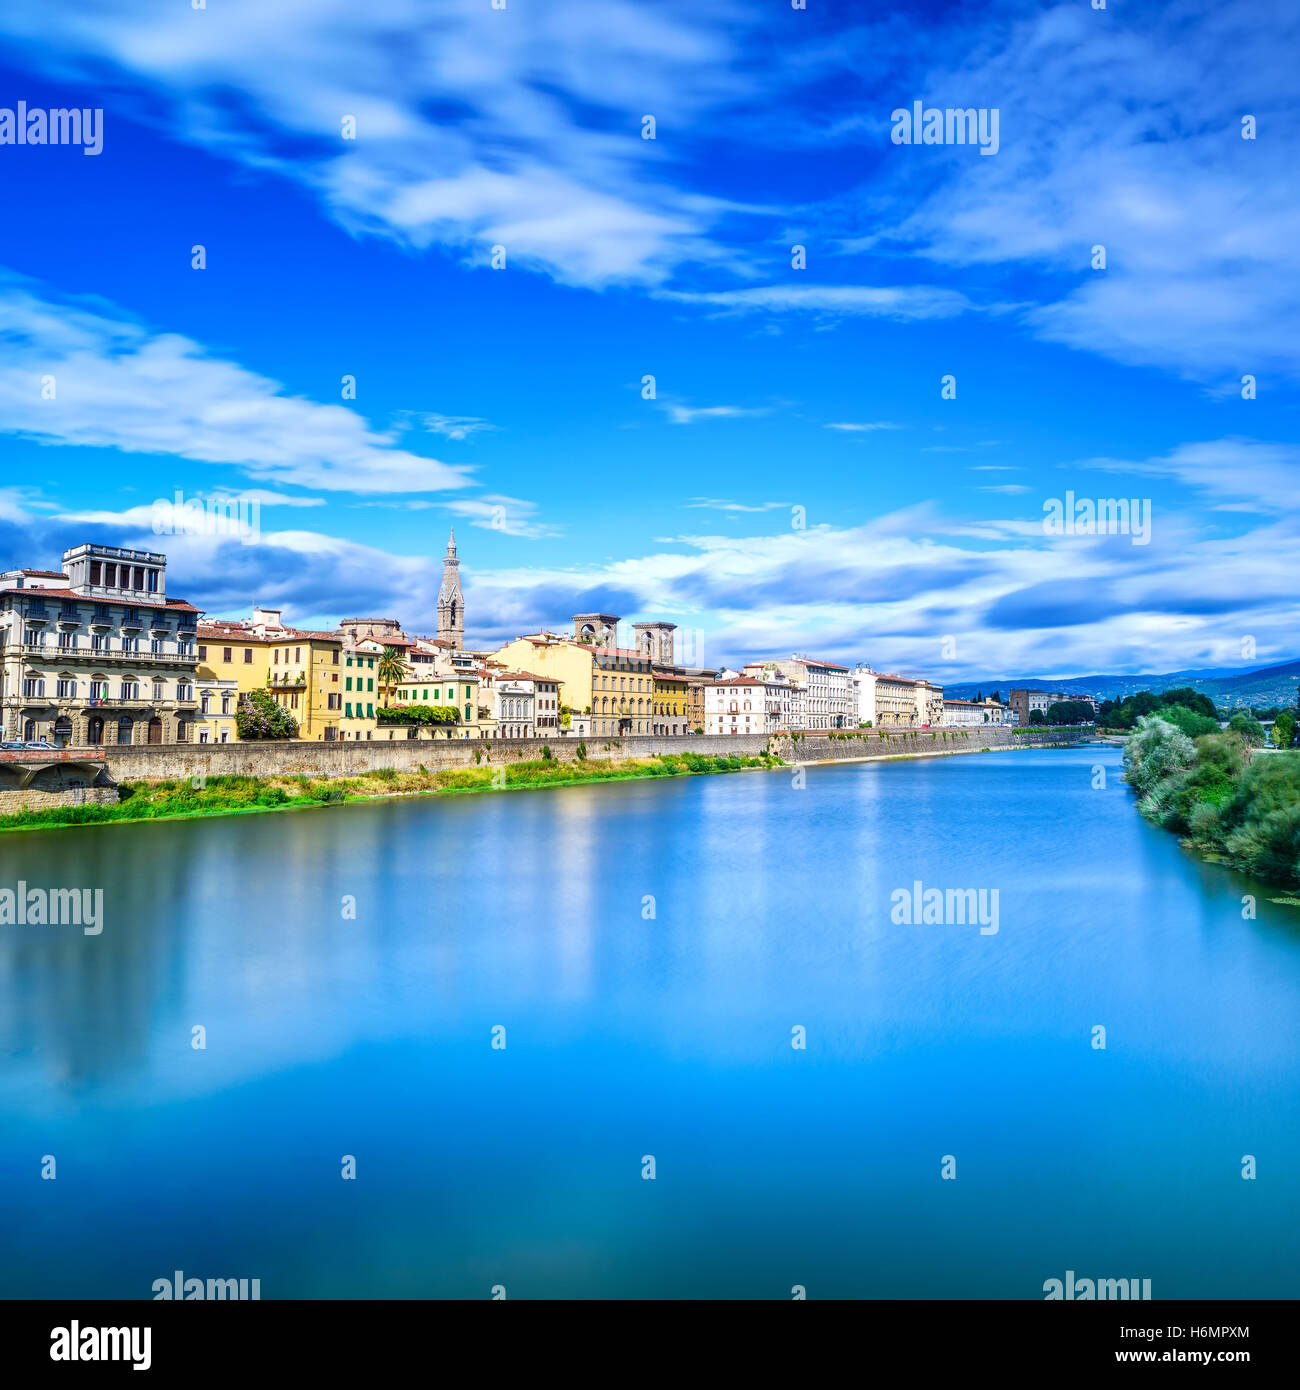 Florence or Firenze, Arno river, sunset landscape. Tuscany, Italy. Long exposure. - Stock Image